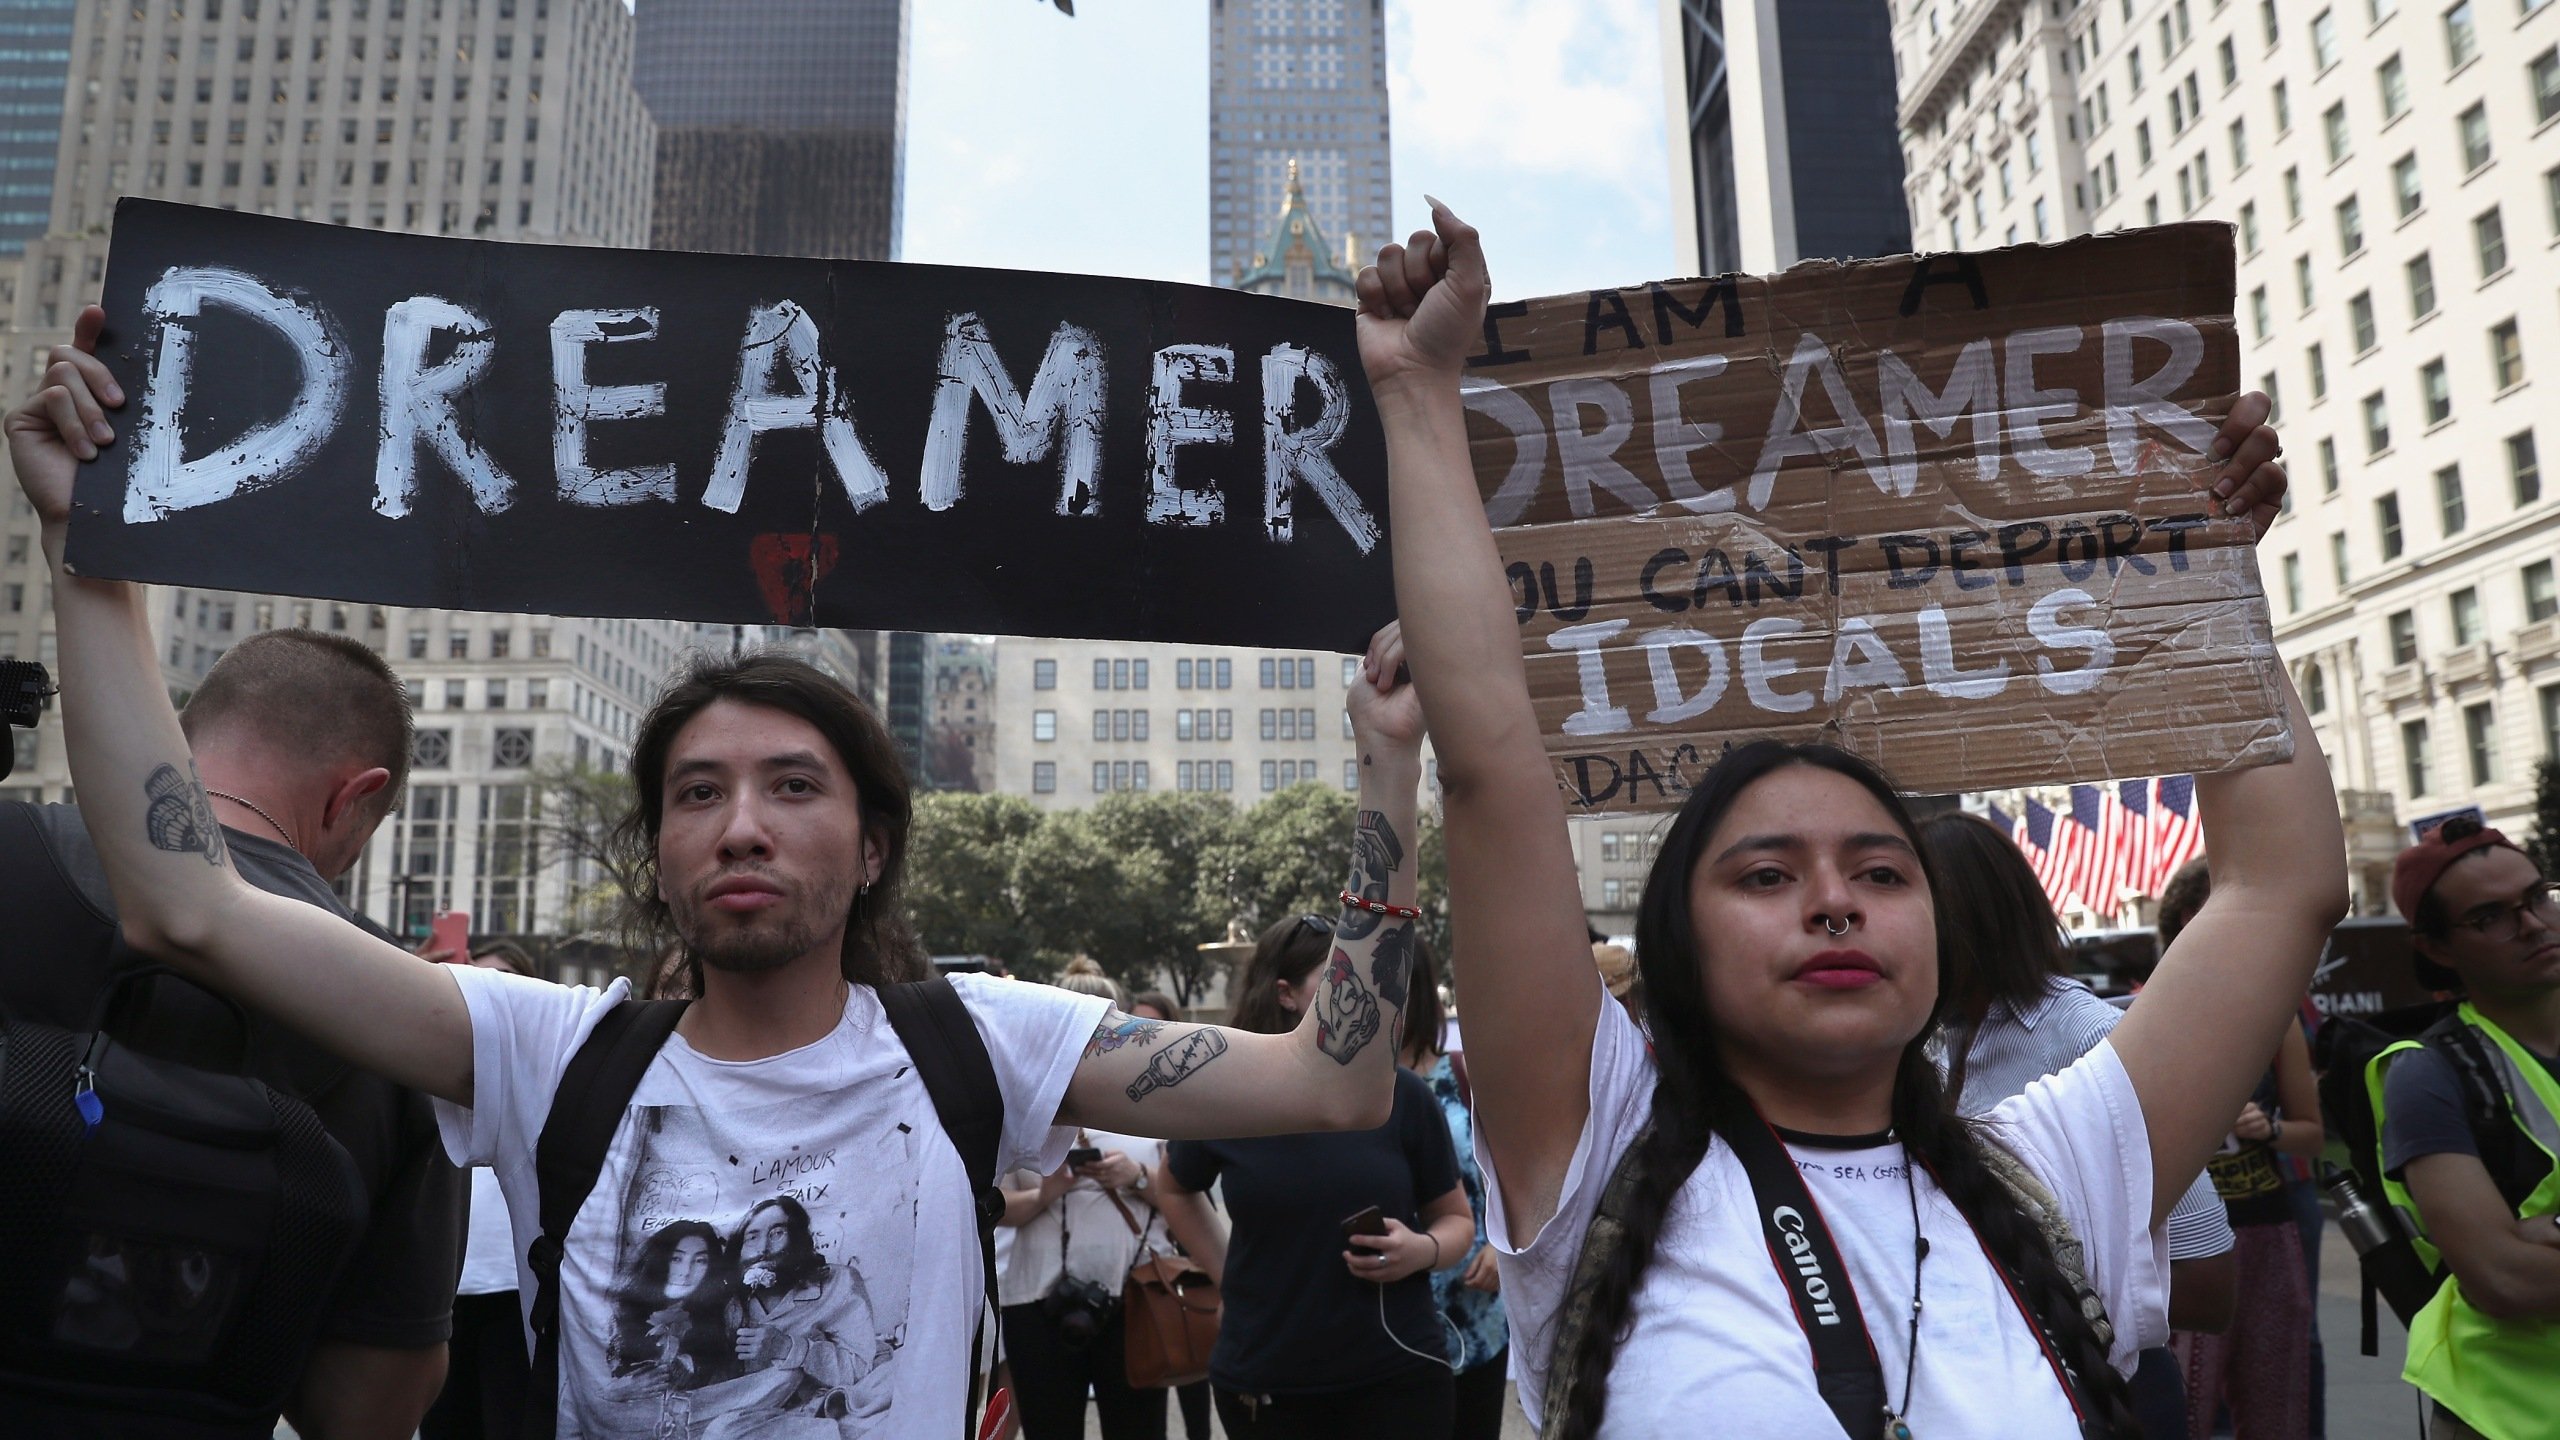 Jovan Rodrigo, 27, and Gloria Mendoza, 26, take part in a protest near Trump Tower on Sept. 5, 2017, in New York City. (Credit: John Moore / Getty Images)